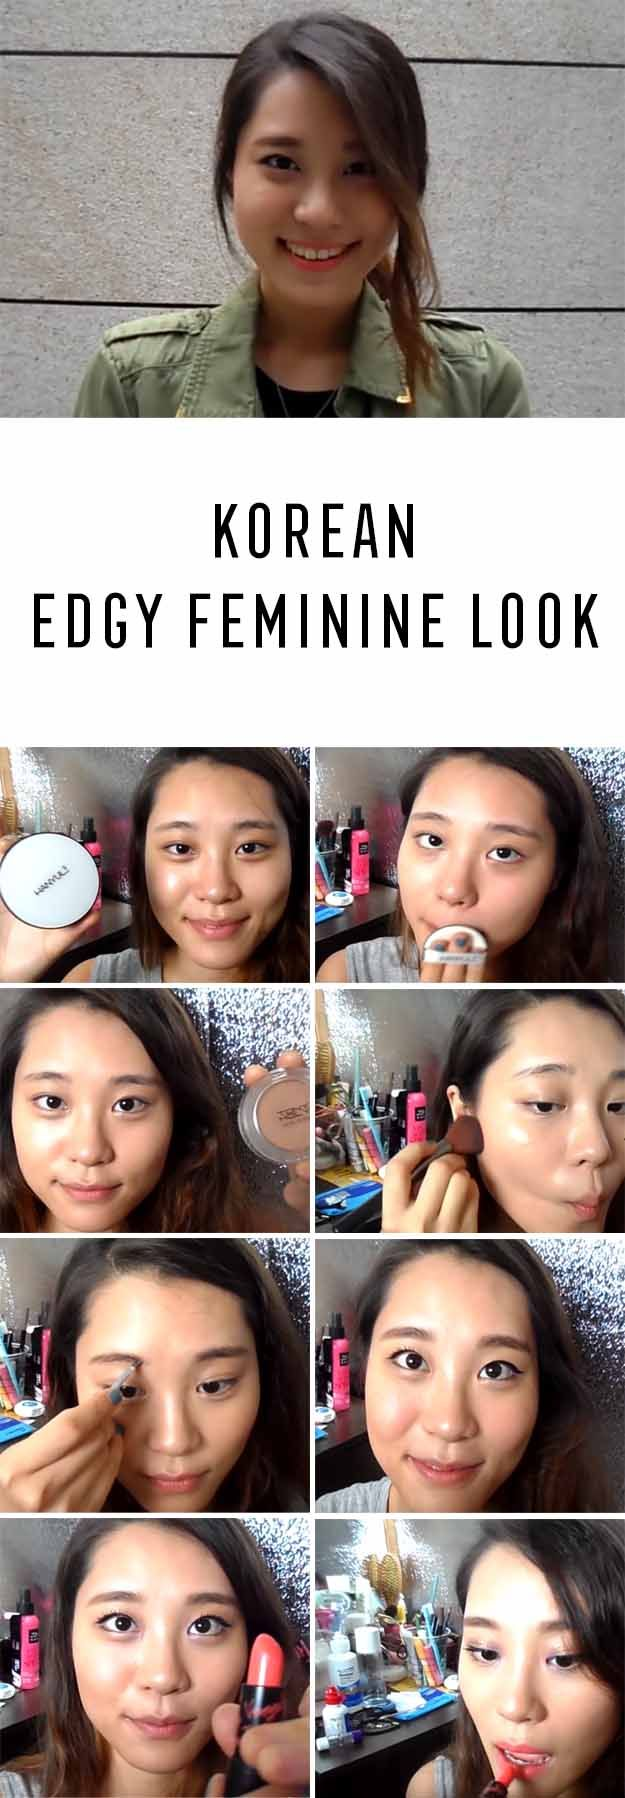 Best Korean Makeup Tutorials - Get Ready With Me KOREAN EDGY FEMININE LOOK Giwon - Natural Step By Step Tutorials For Ulzzang, Pony, Puppy Eyes, Eyeshadows, Kpop, Eyebrows, Eyeliner and even Hairstyles. Super Cute DIY And Easy Contouring, Foundation, and Simple Dewy Skin Help For Beginners - https://www.thegoddess.com/best-korean-makeup-tutorials